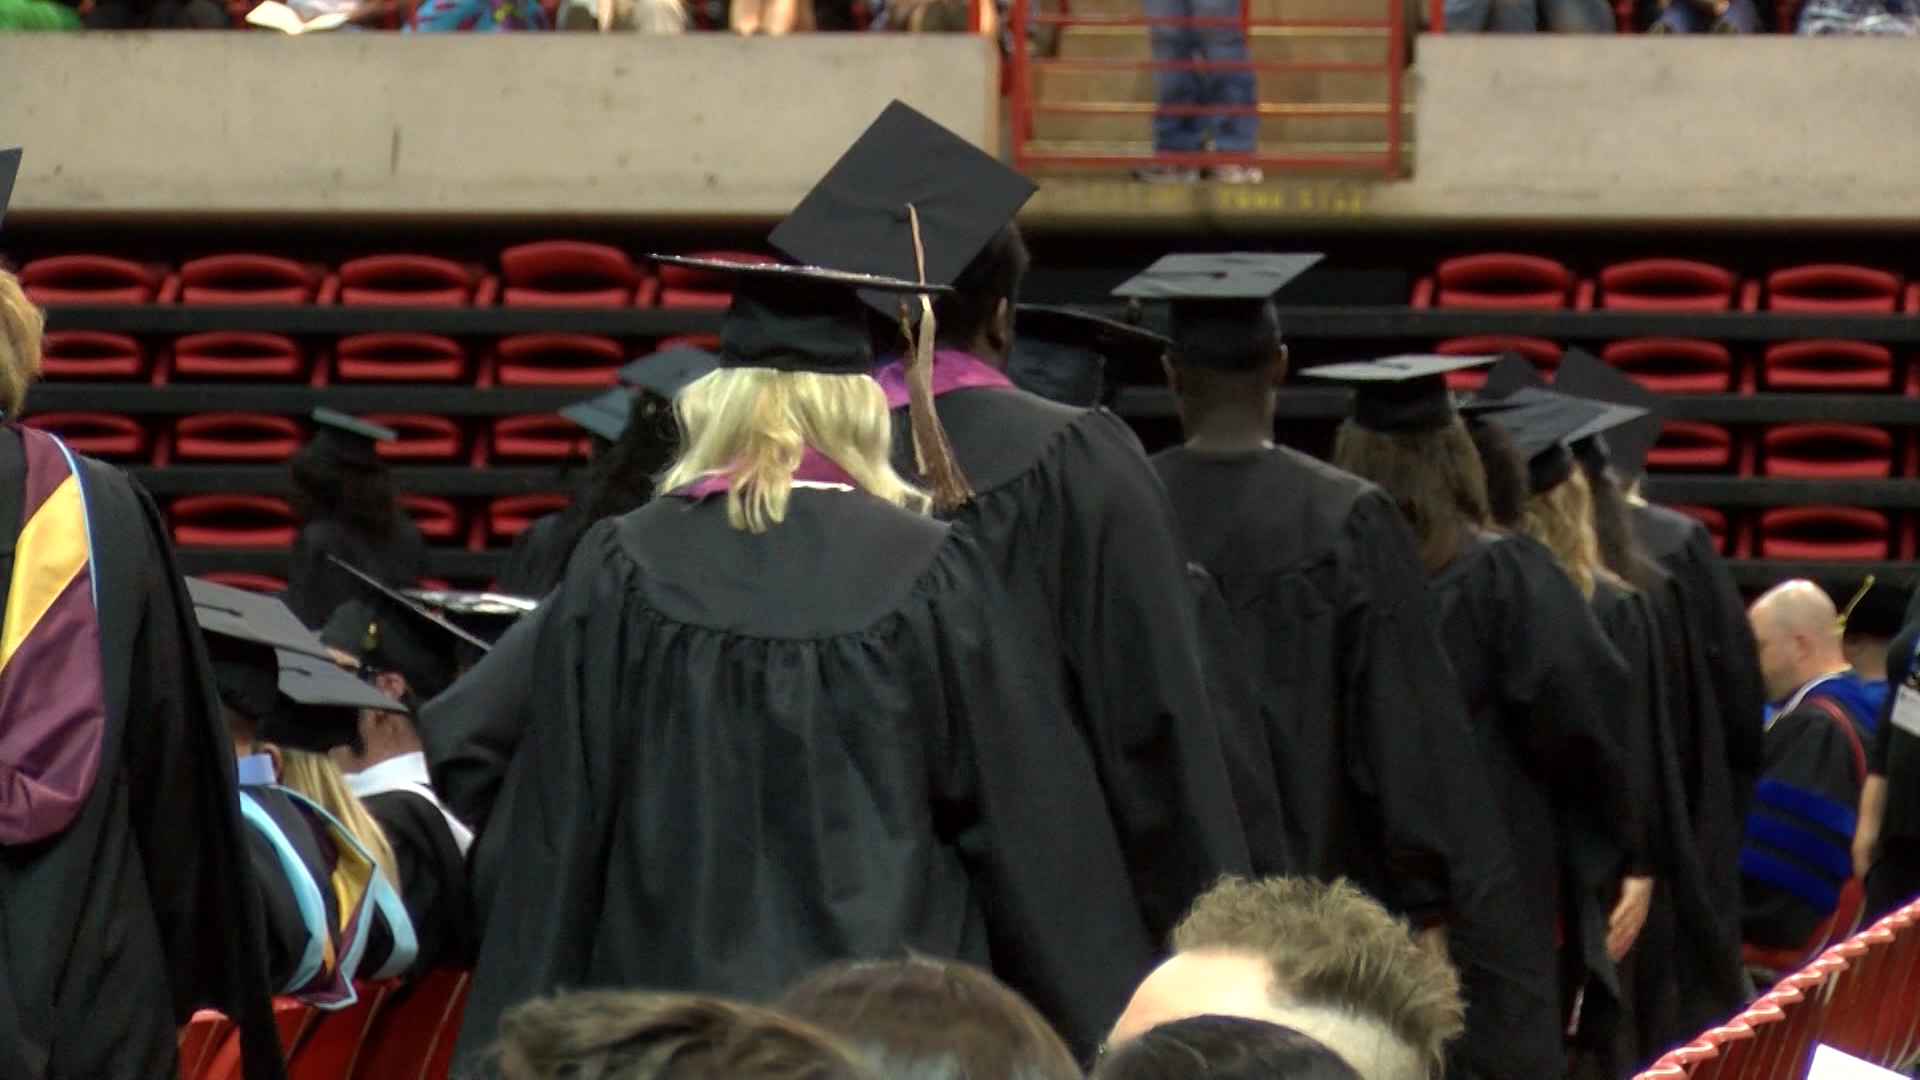 This time of year college grads are preparing to enter the workforce but COVID-19 has complicated that for some.